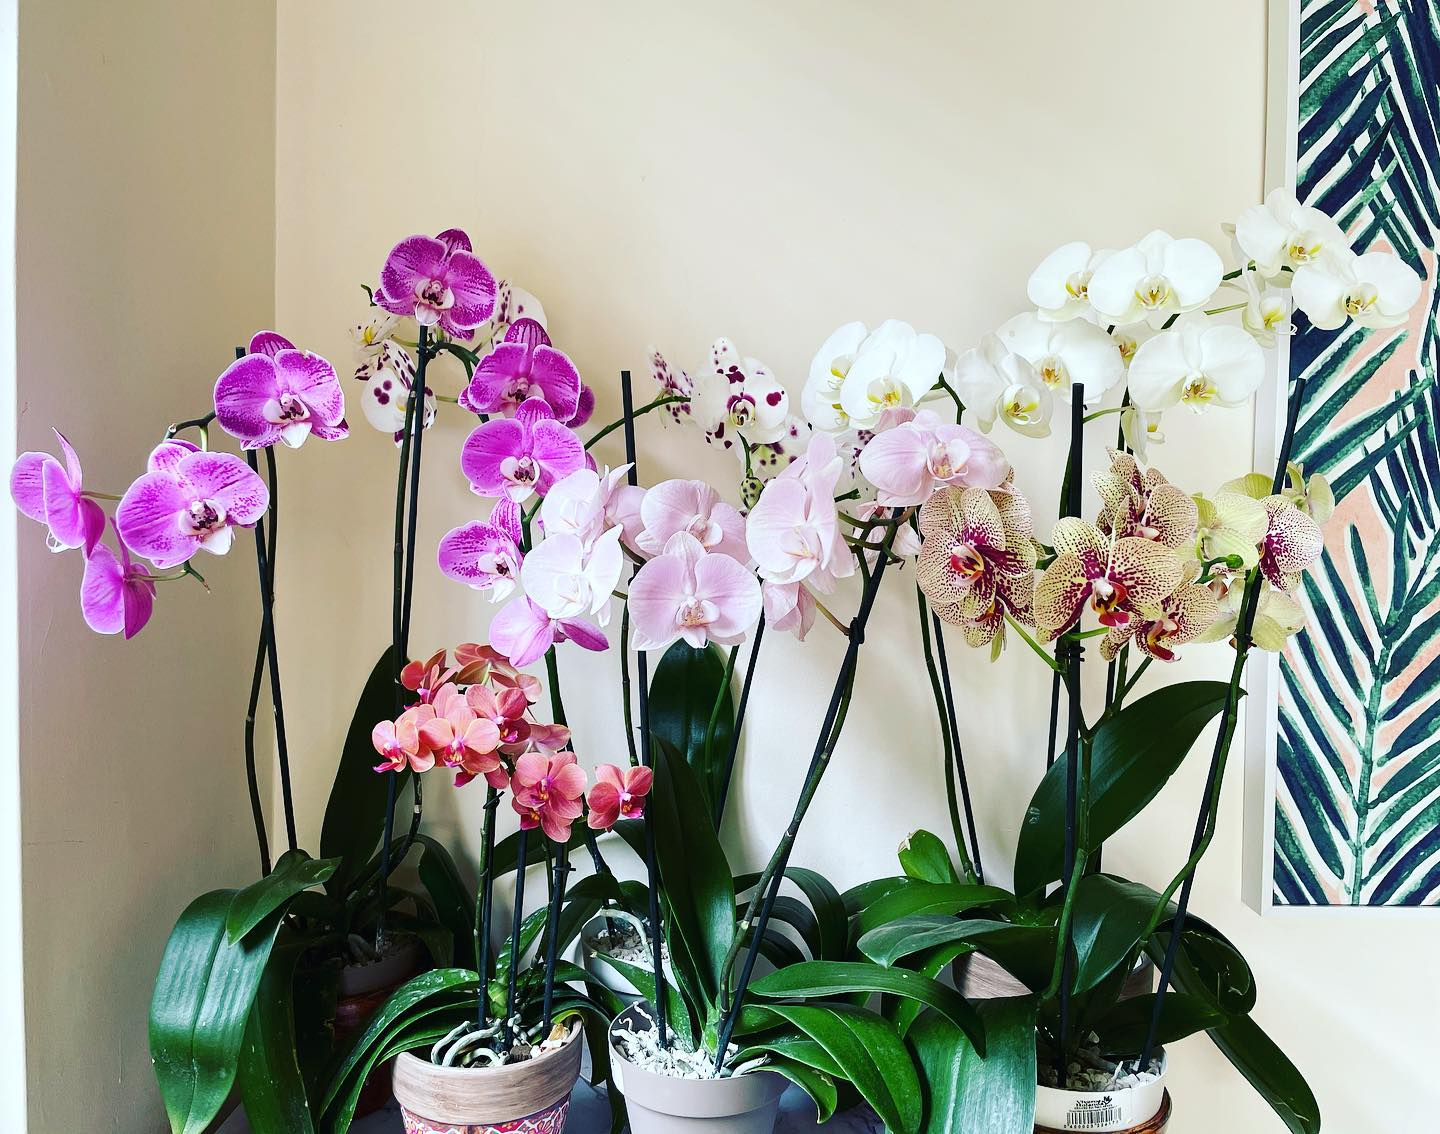 Happy 2 month birthday to this absolutely ridiculous burst of orchid blooms that just won't quit